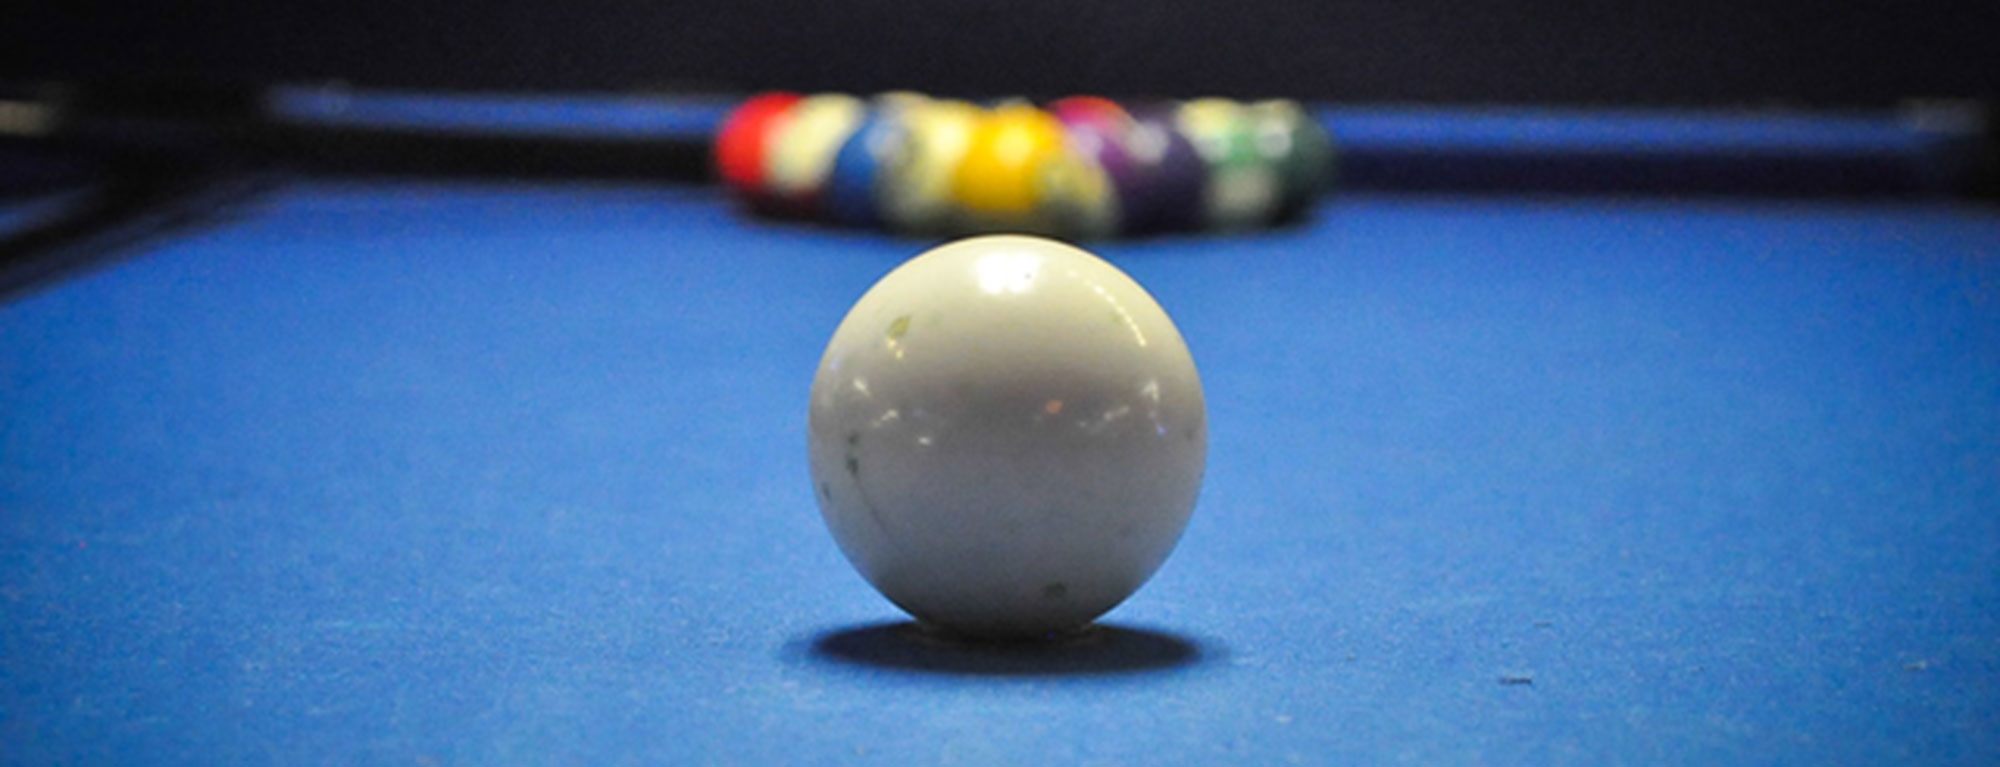 Billiards at Emerald Lanes